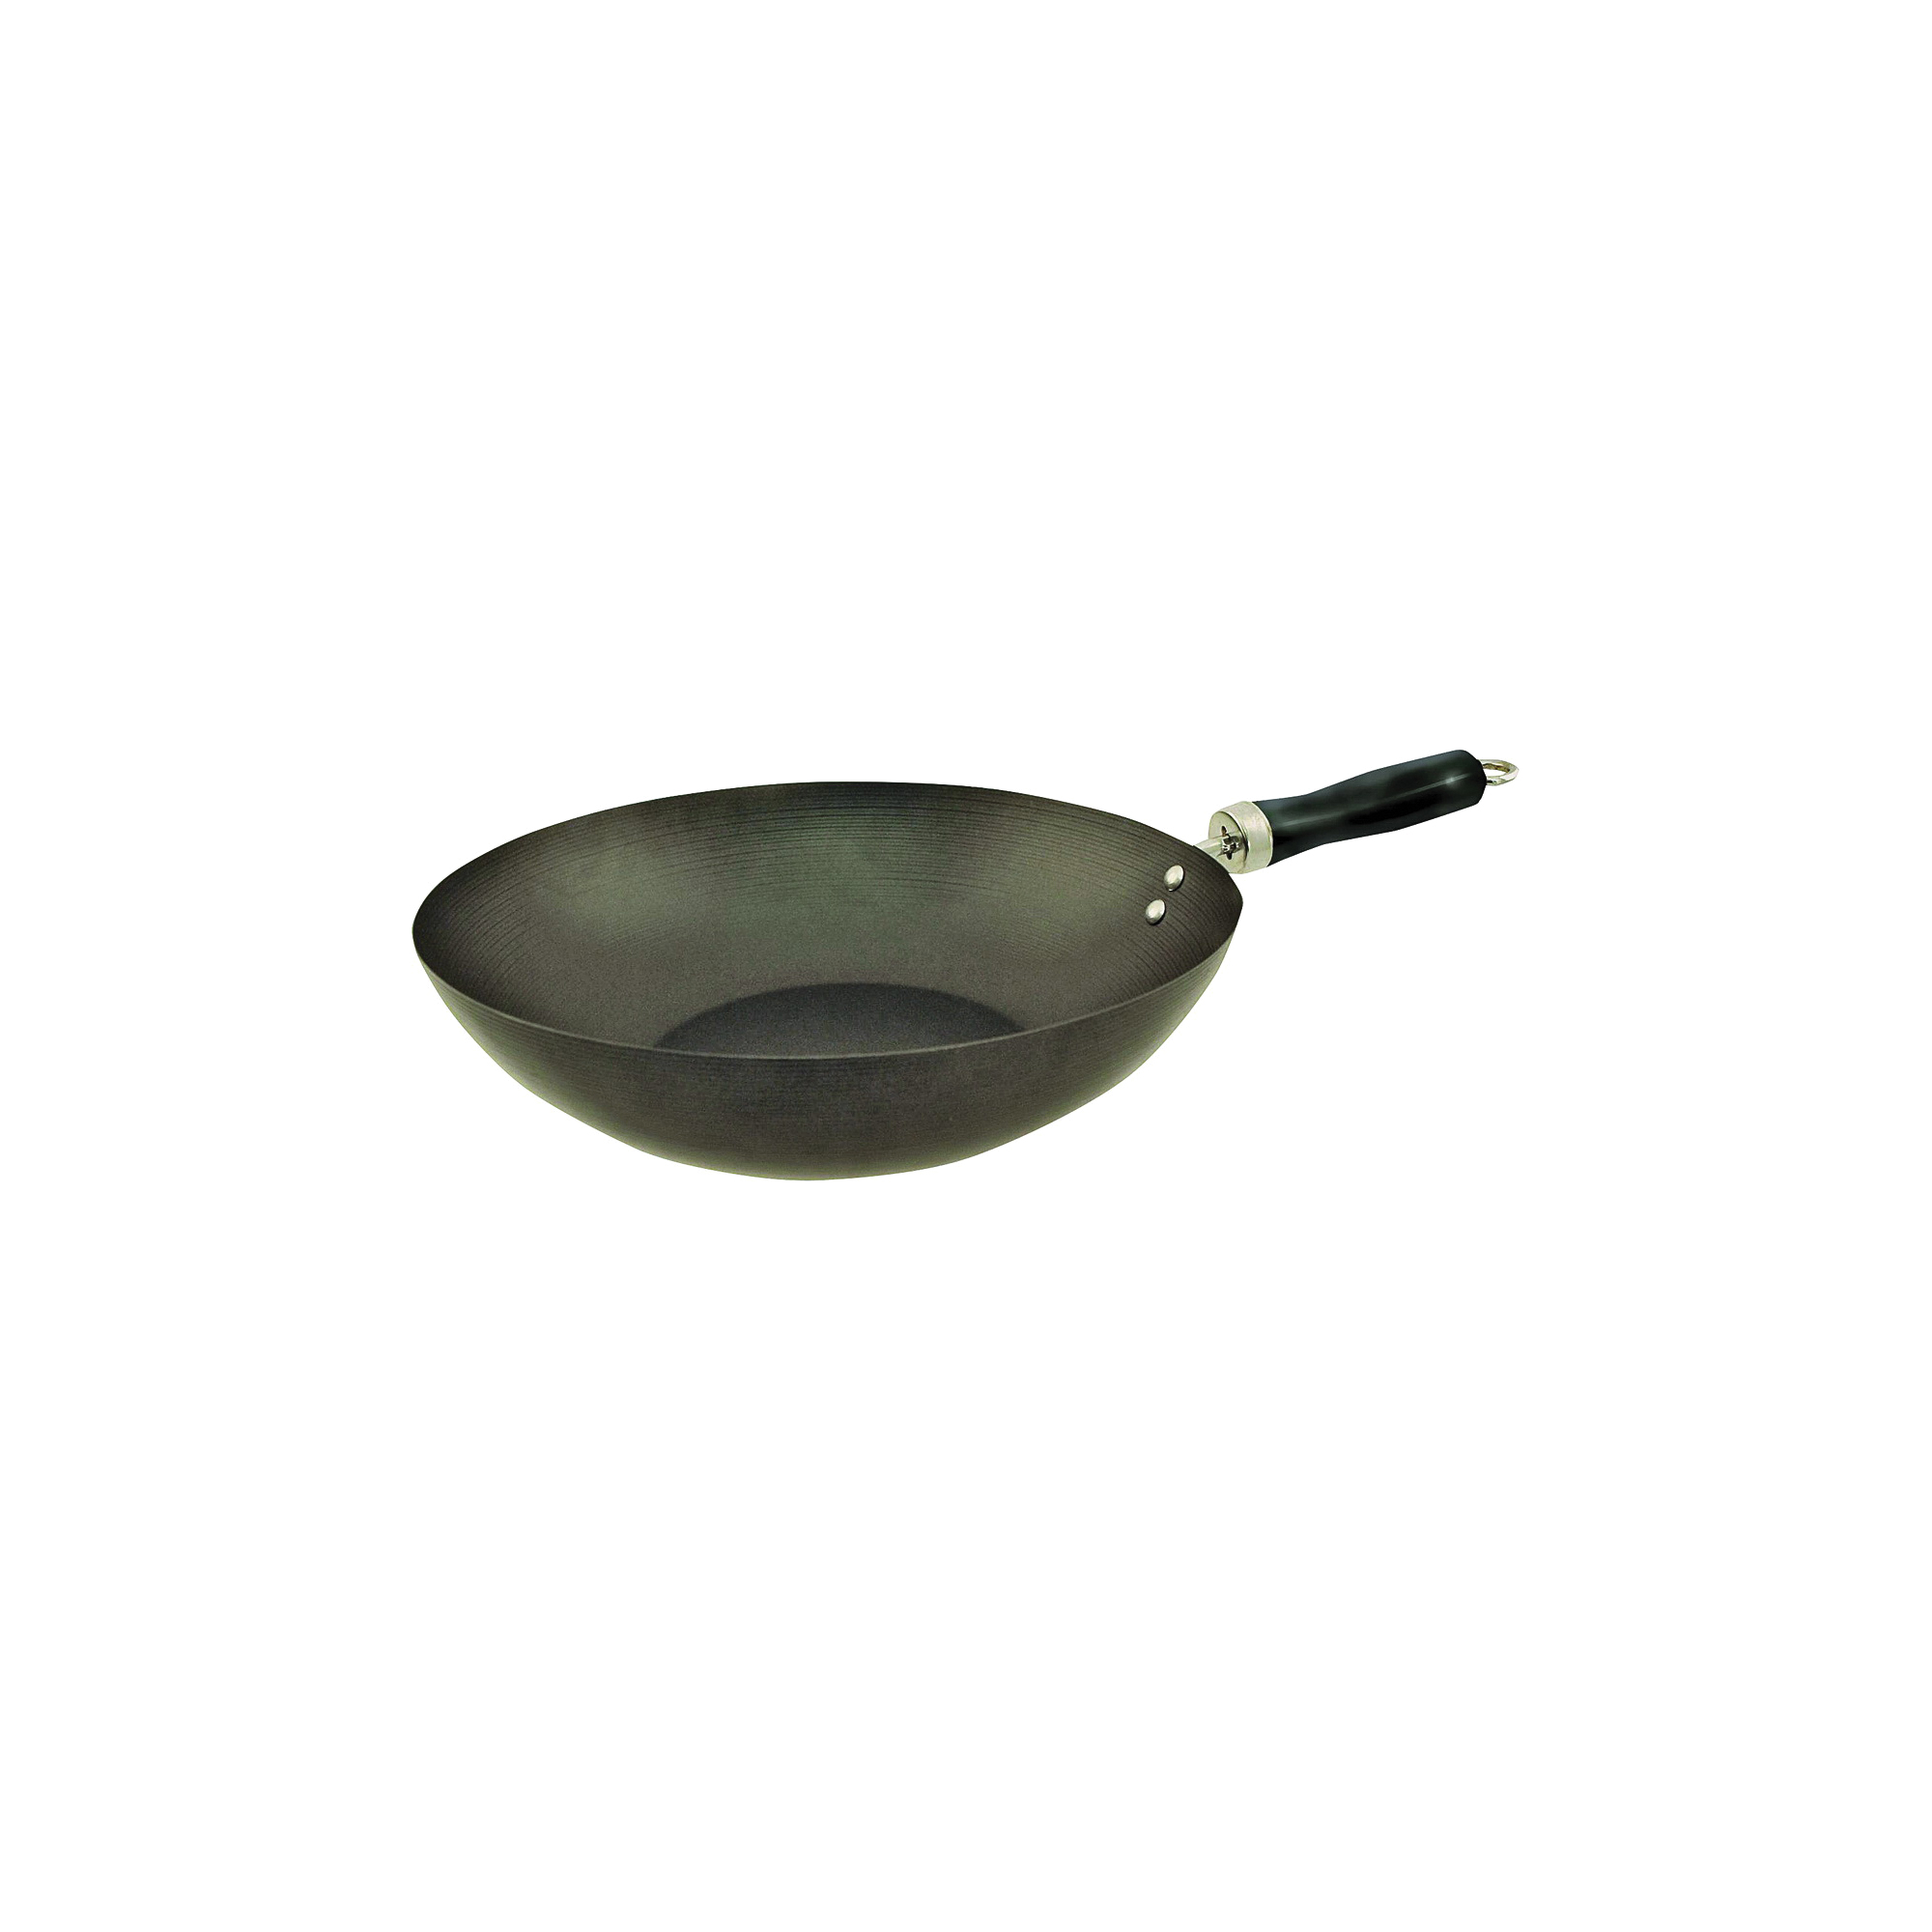 Picture of Euro-Ware Eurohome 417 Wok, 6.5 qt Capacity, 12 in Dia, Heat-Resistant Handle